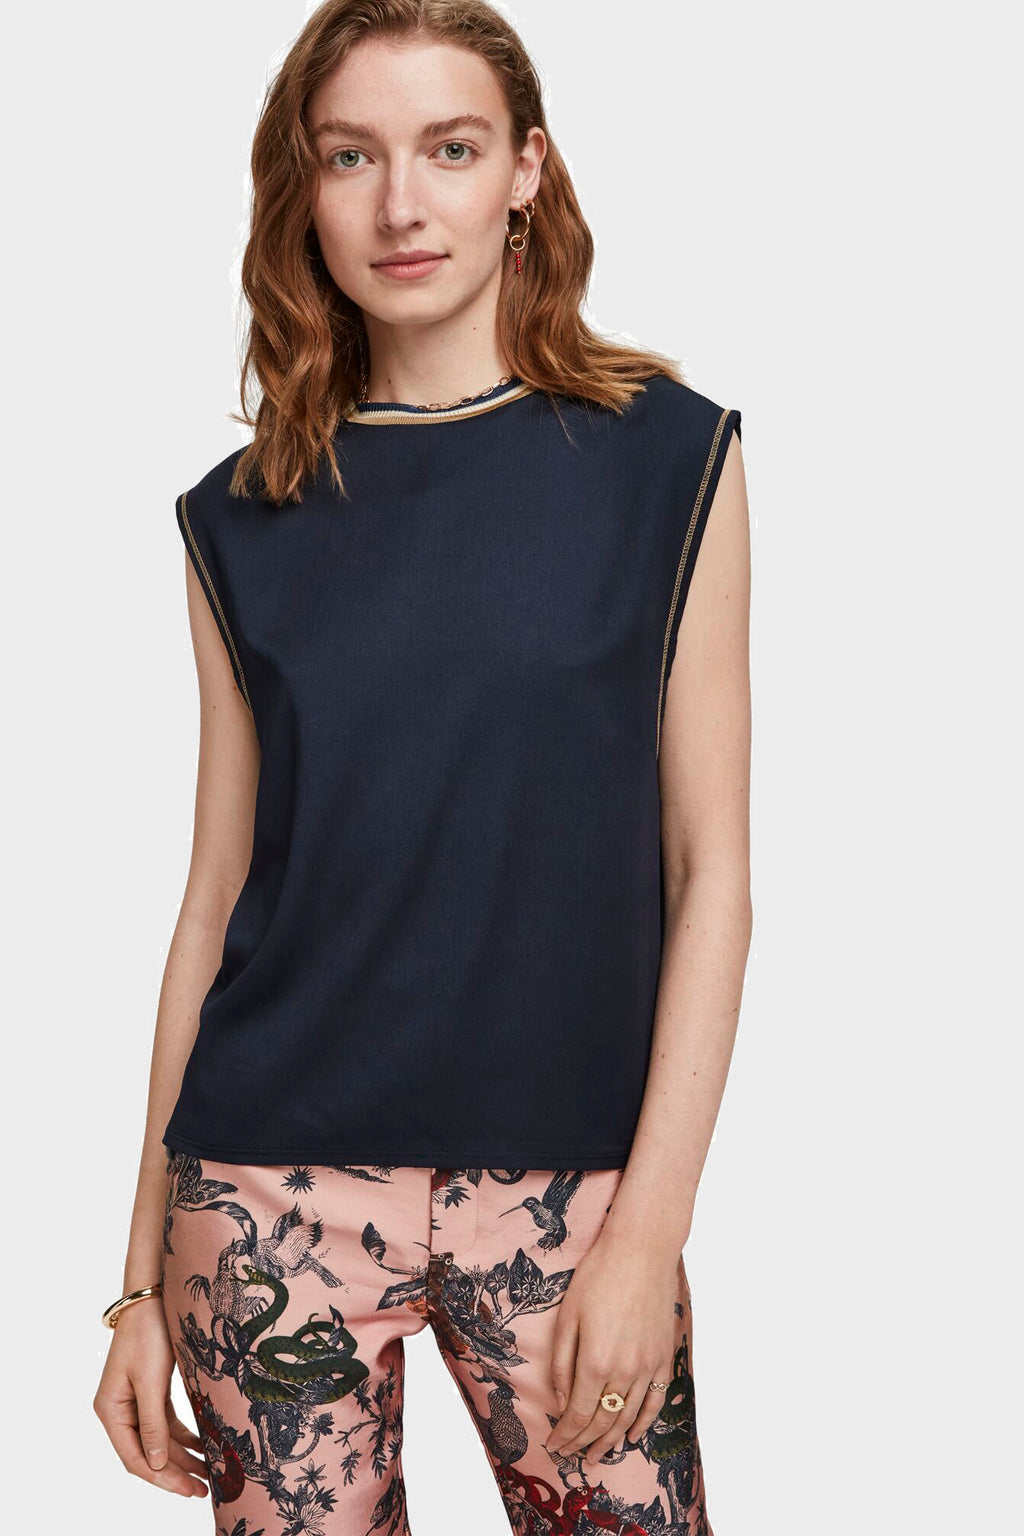 SCOTCH AND SODA - Sleeveless Top online at PAYA boutique